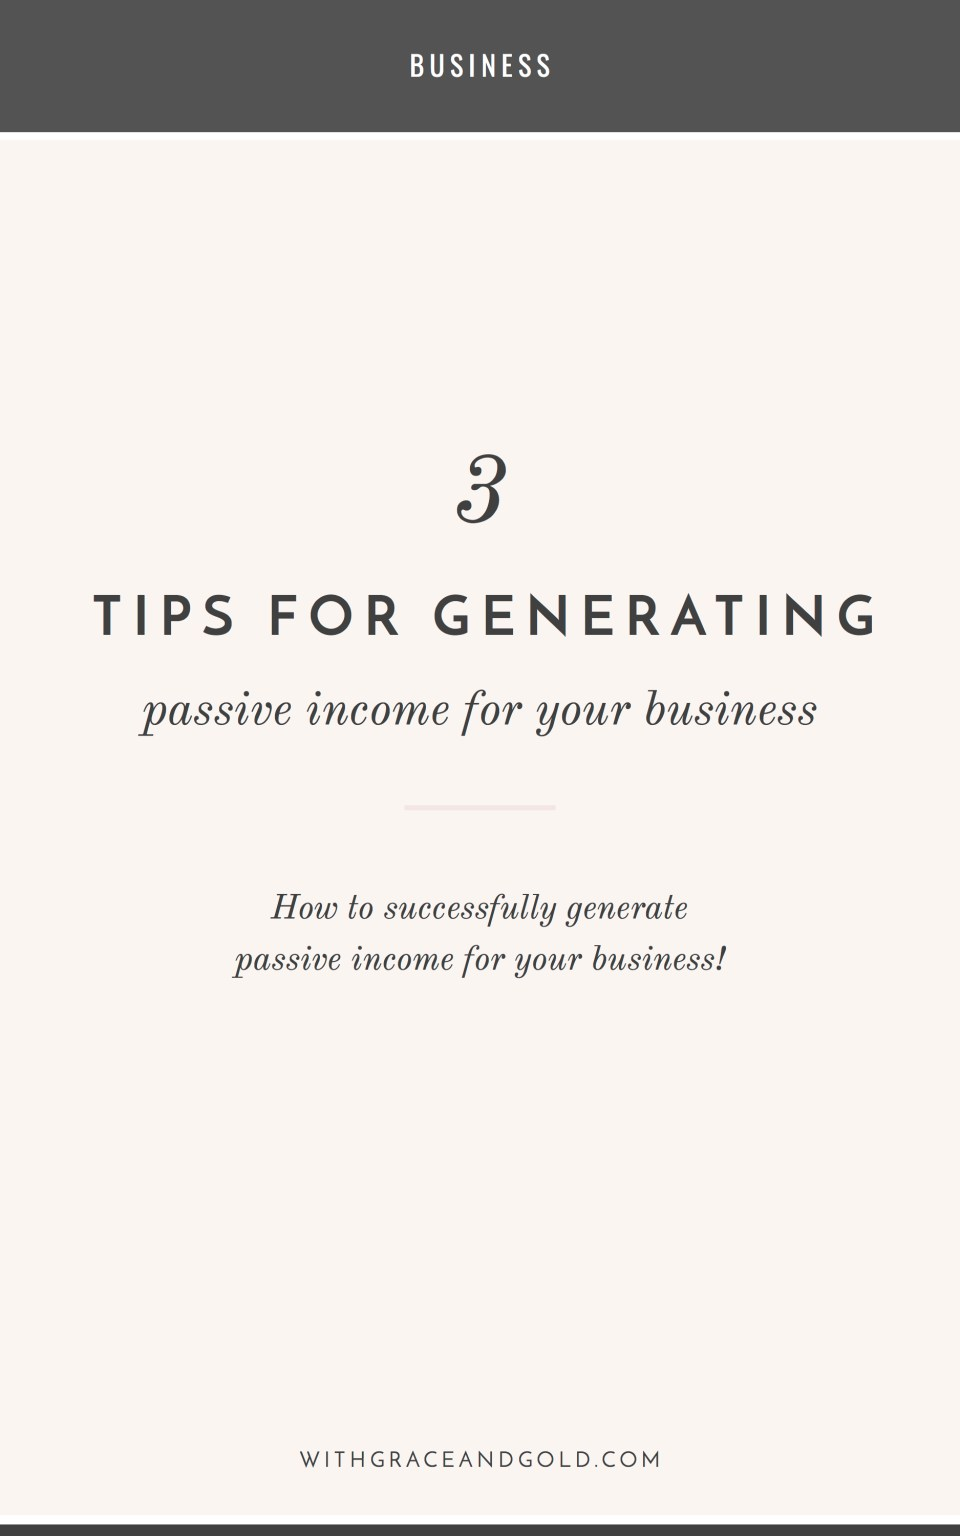 3 Tips for Generating Passive Income for Your Business